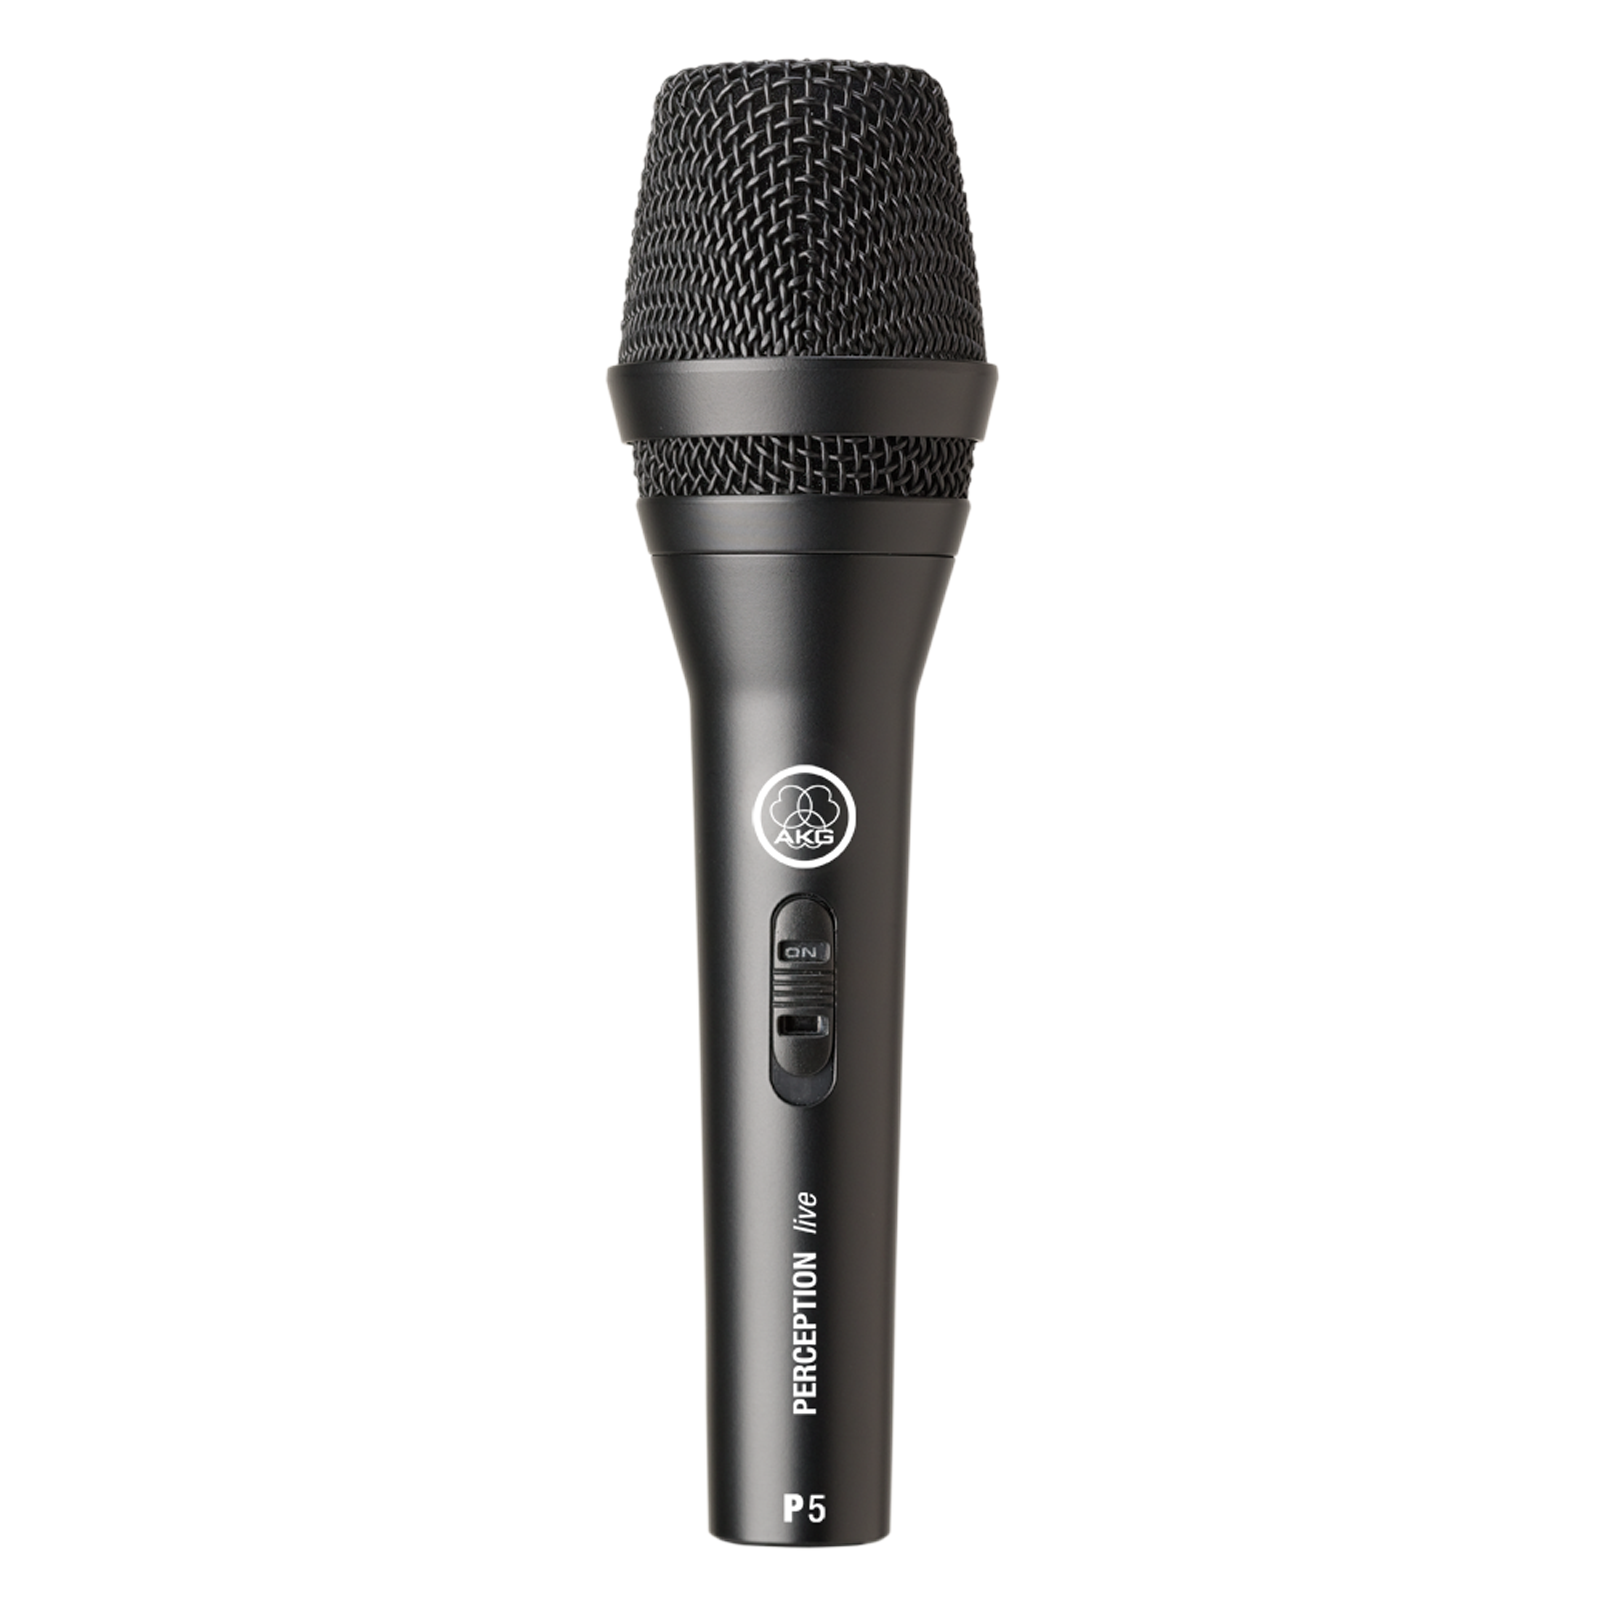 P5 S - Black - High-performance dynamic vocal microphone with on/off switch - Hero